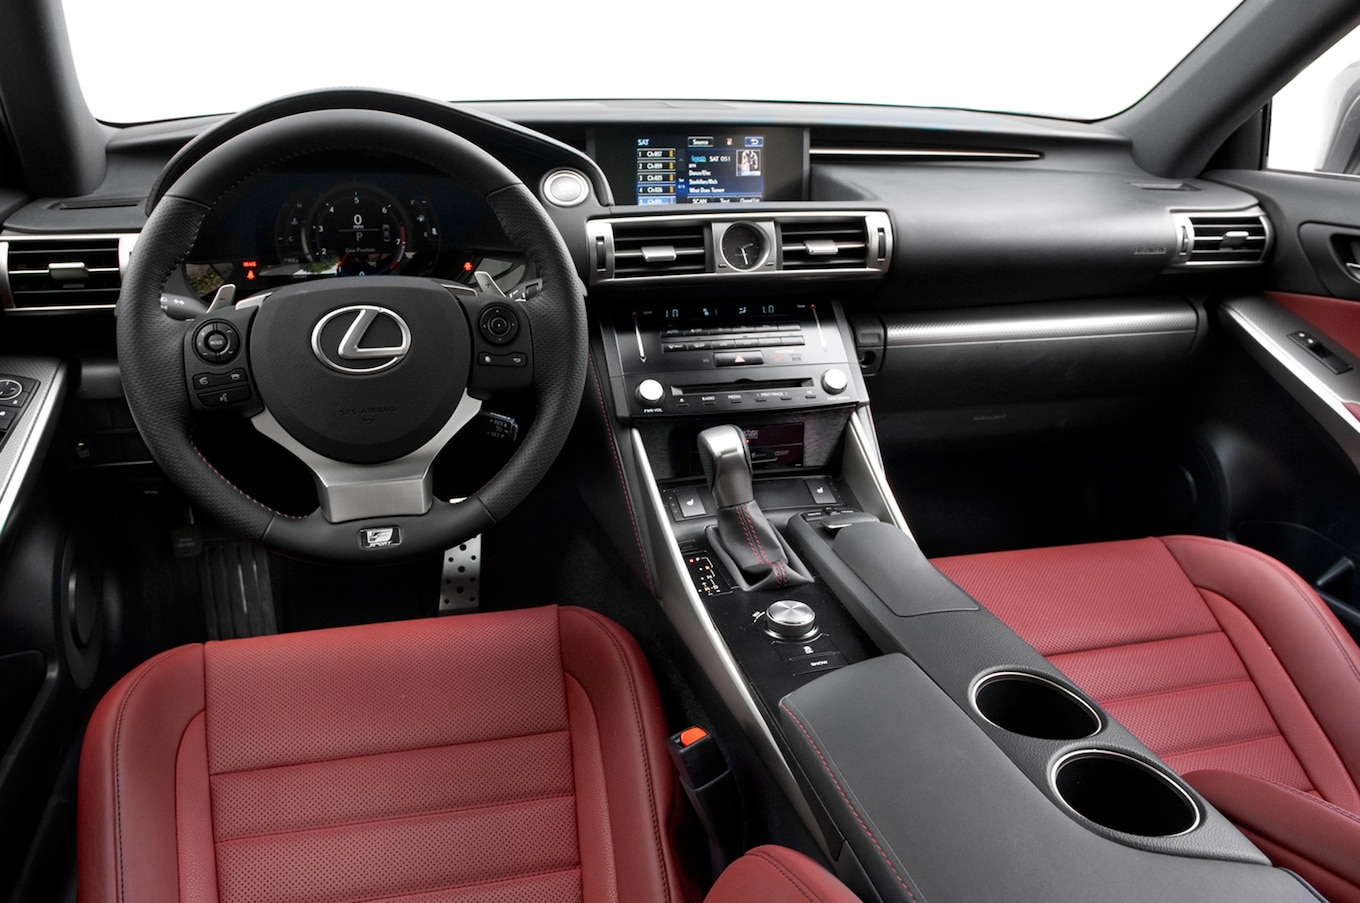 2014 Lexus IS 250 Not Re mended by Consumer Reports